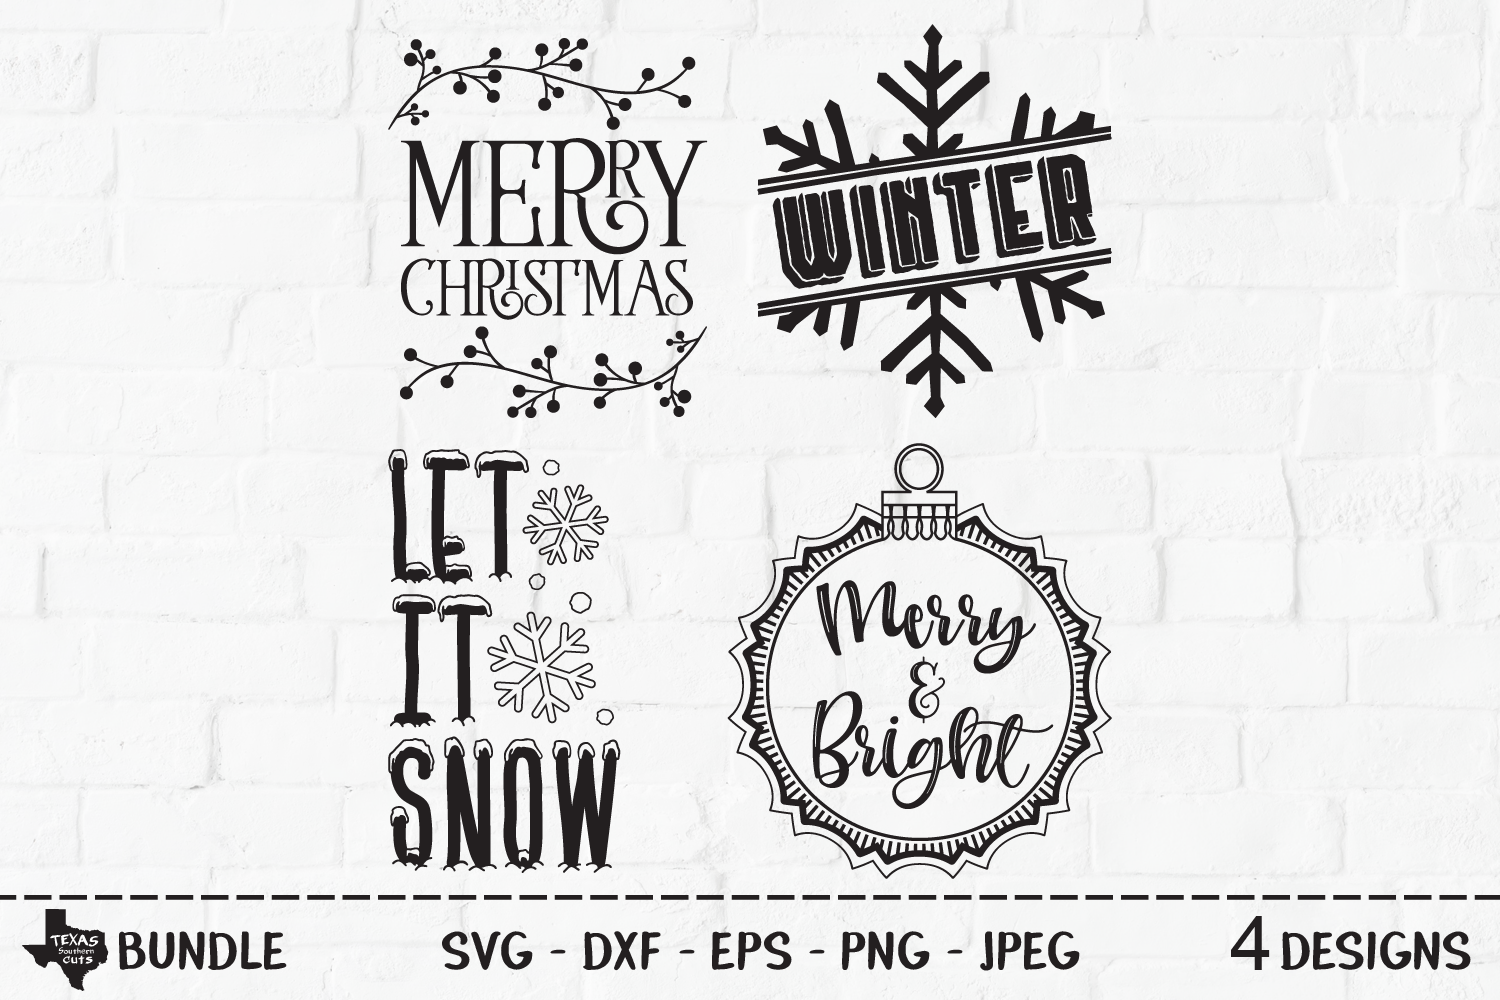 Christmas Bundle Christmas Designs Graphic By